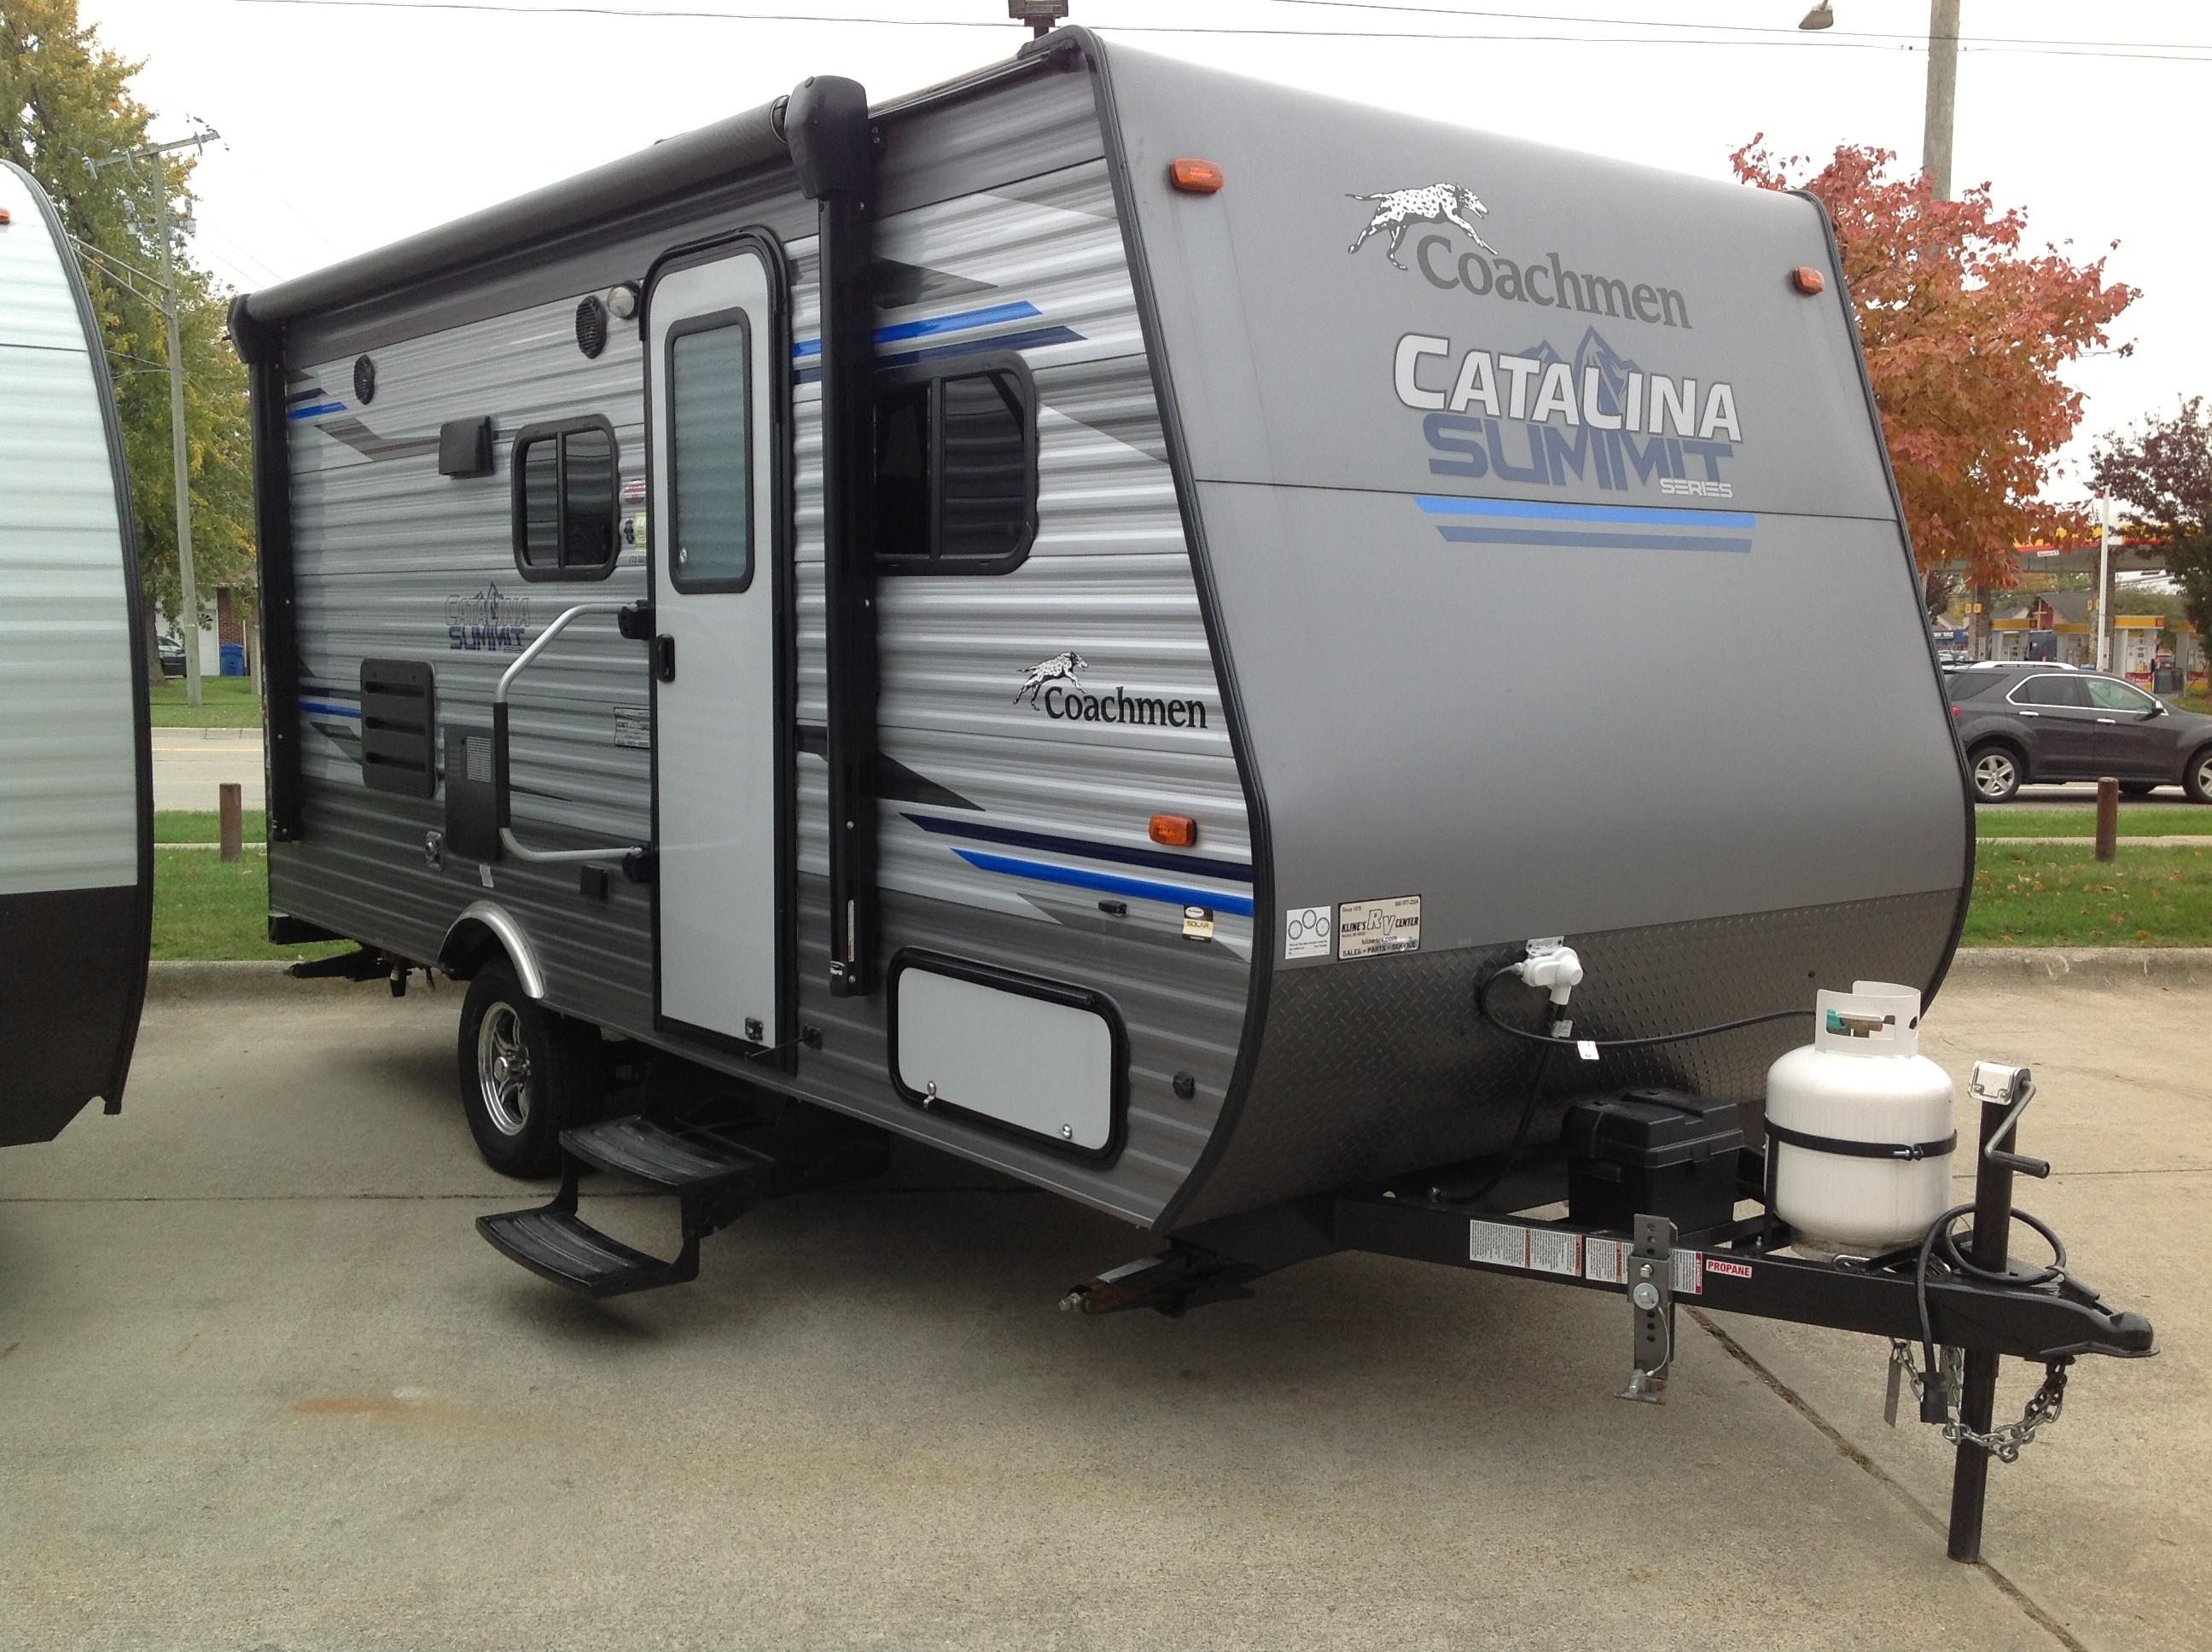 Used, 2020, Coachmen, Catalina Summit 172BHS, Travel Trailers